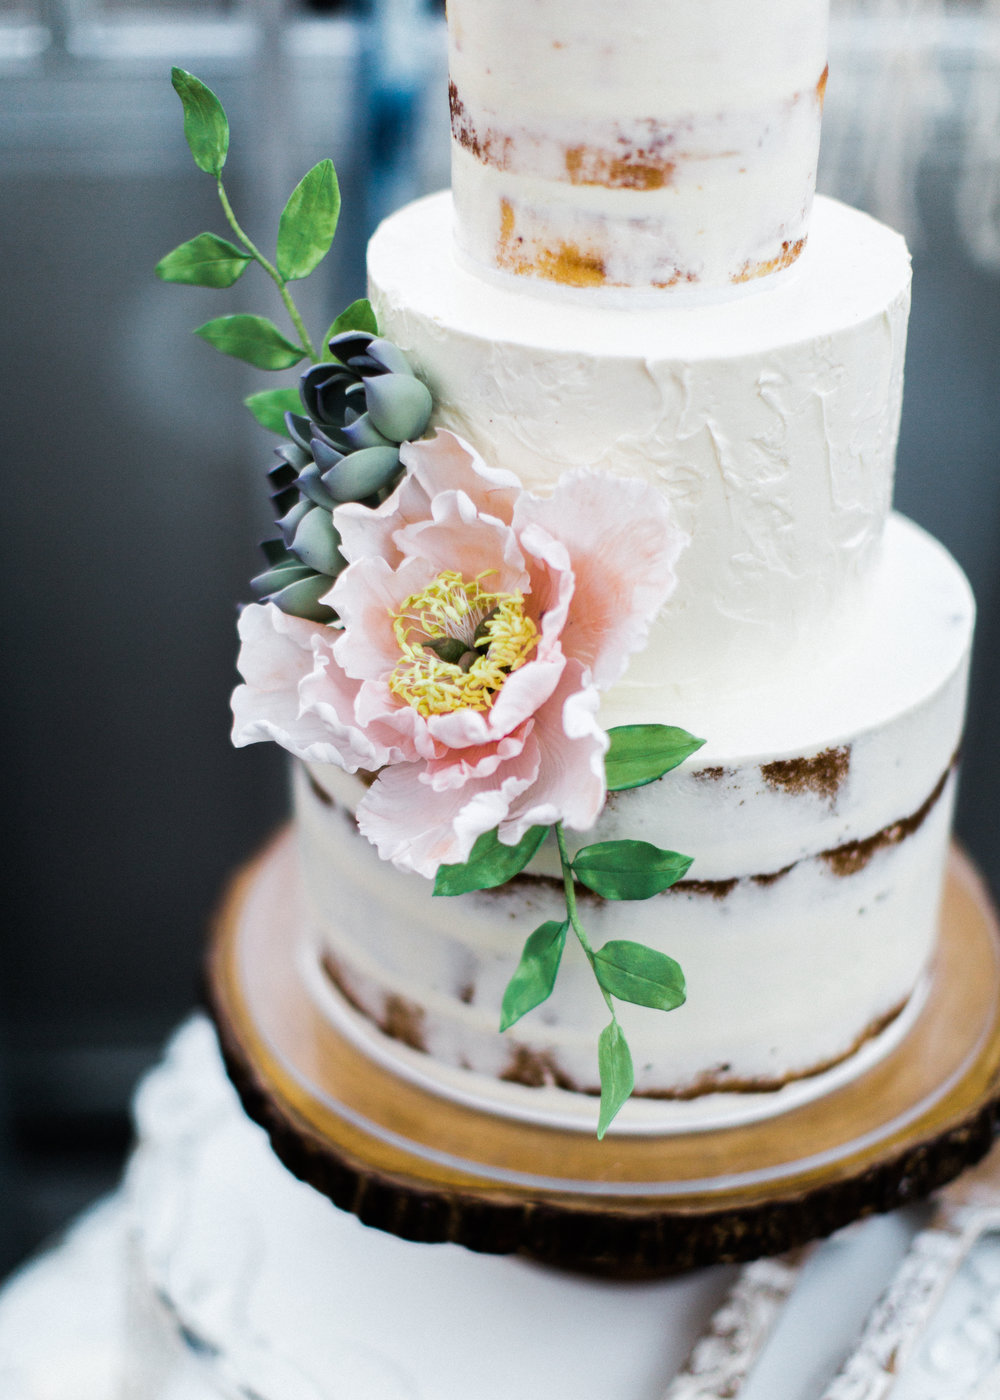 Sugar peony with succulents and foliage. Image copyright Alexandra Knight Photography.